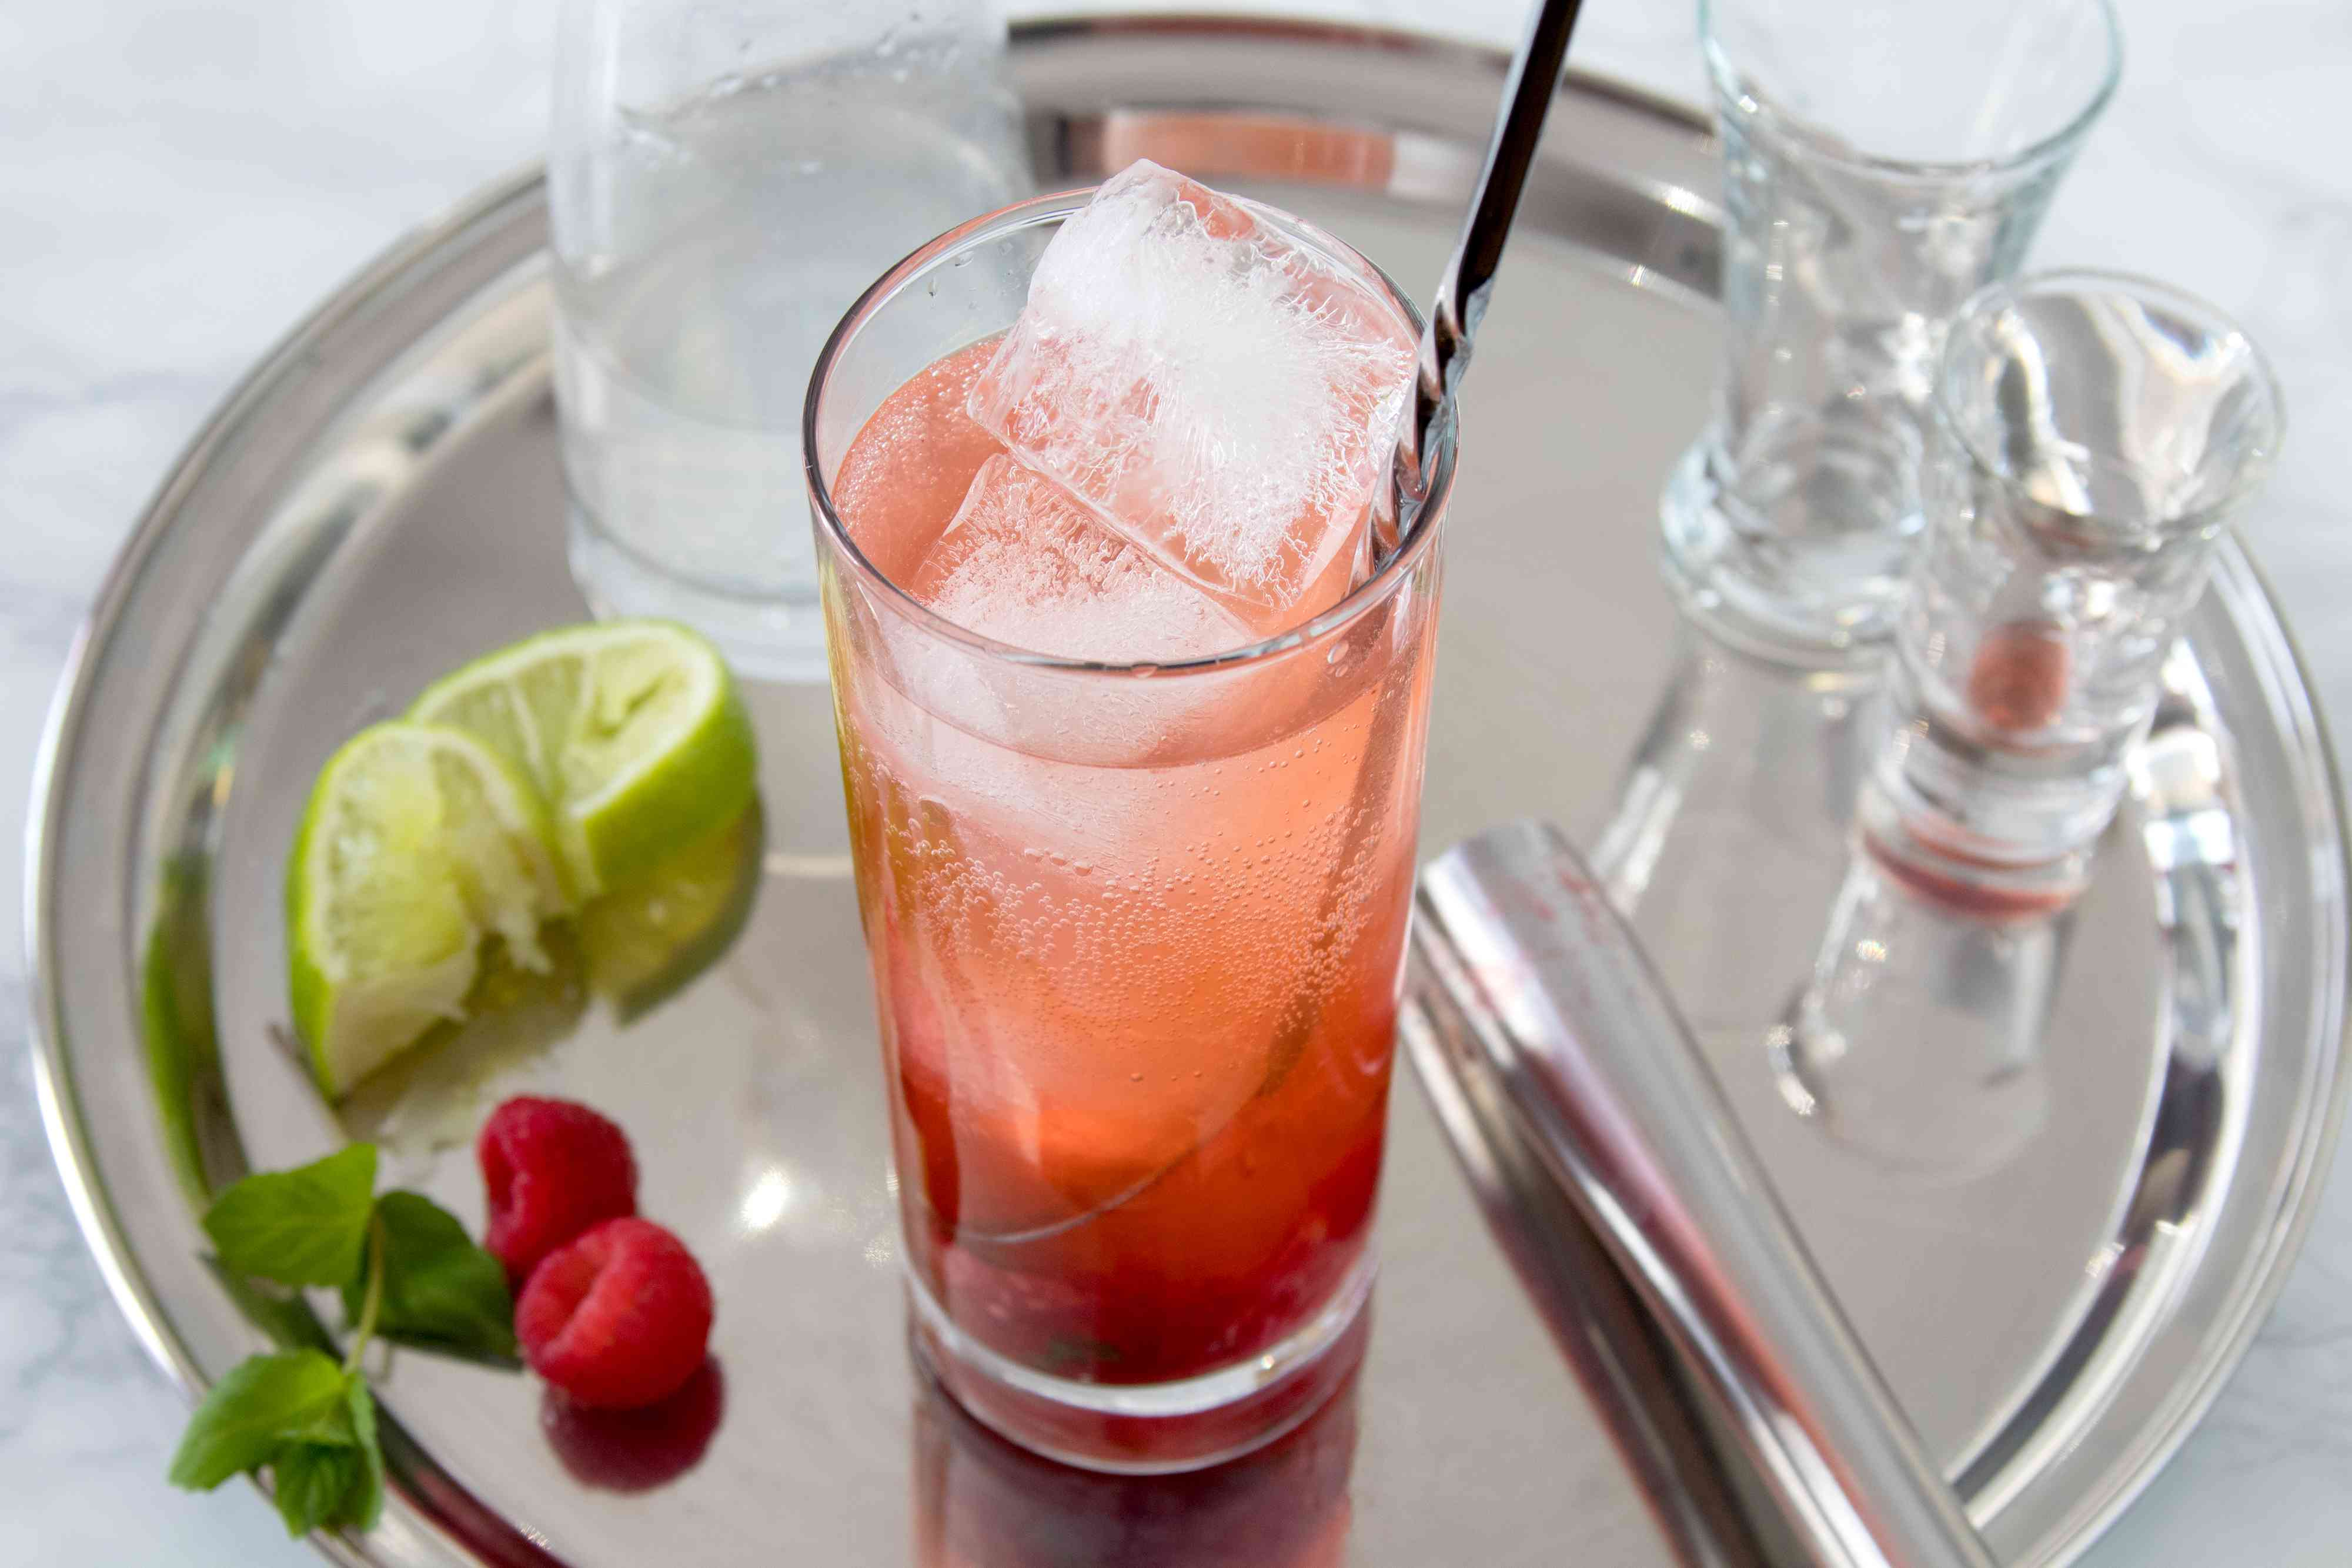 Ginger ale added to the raspberry mojito and mixed